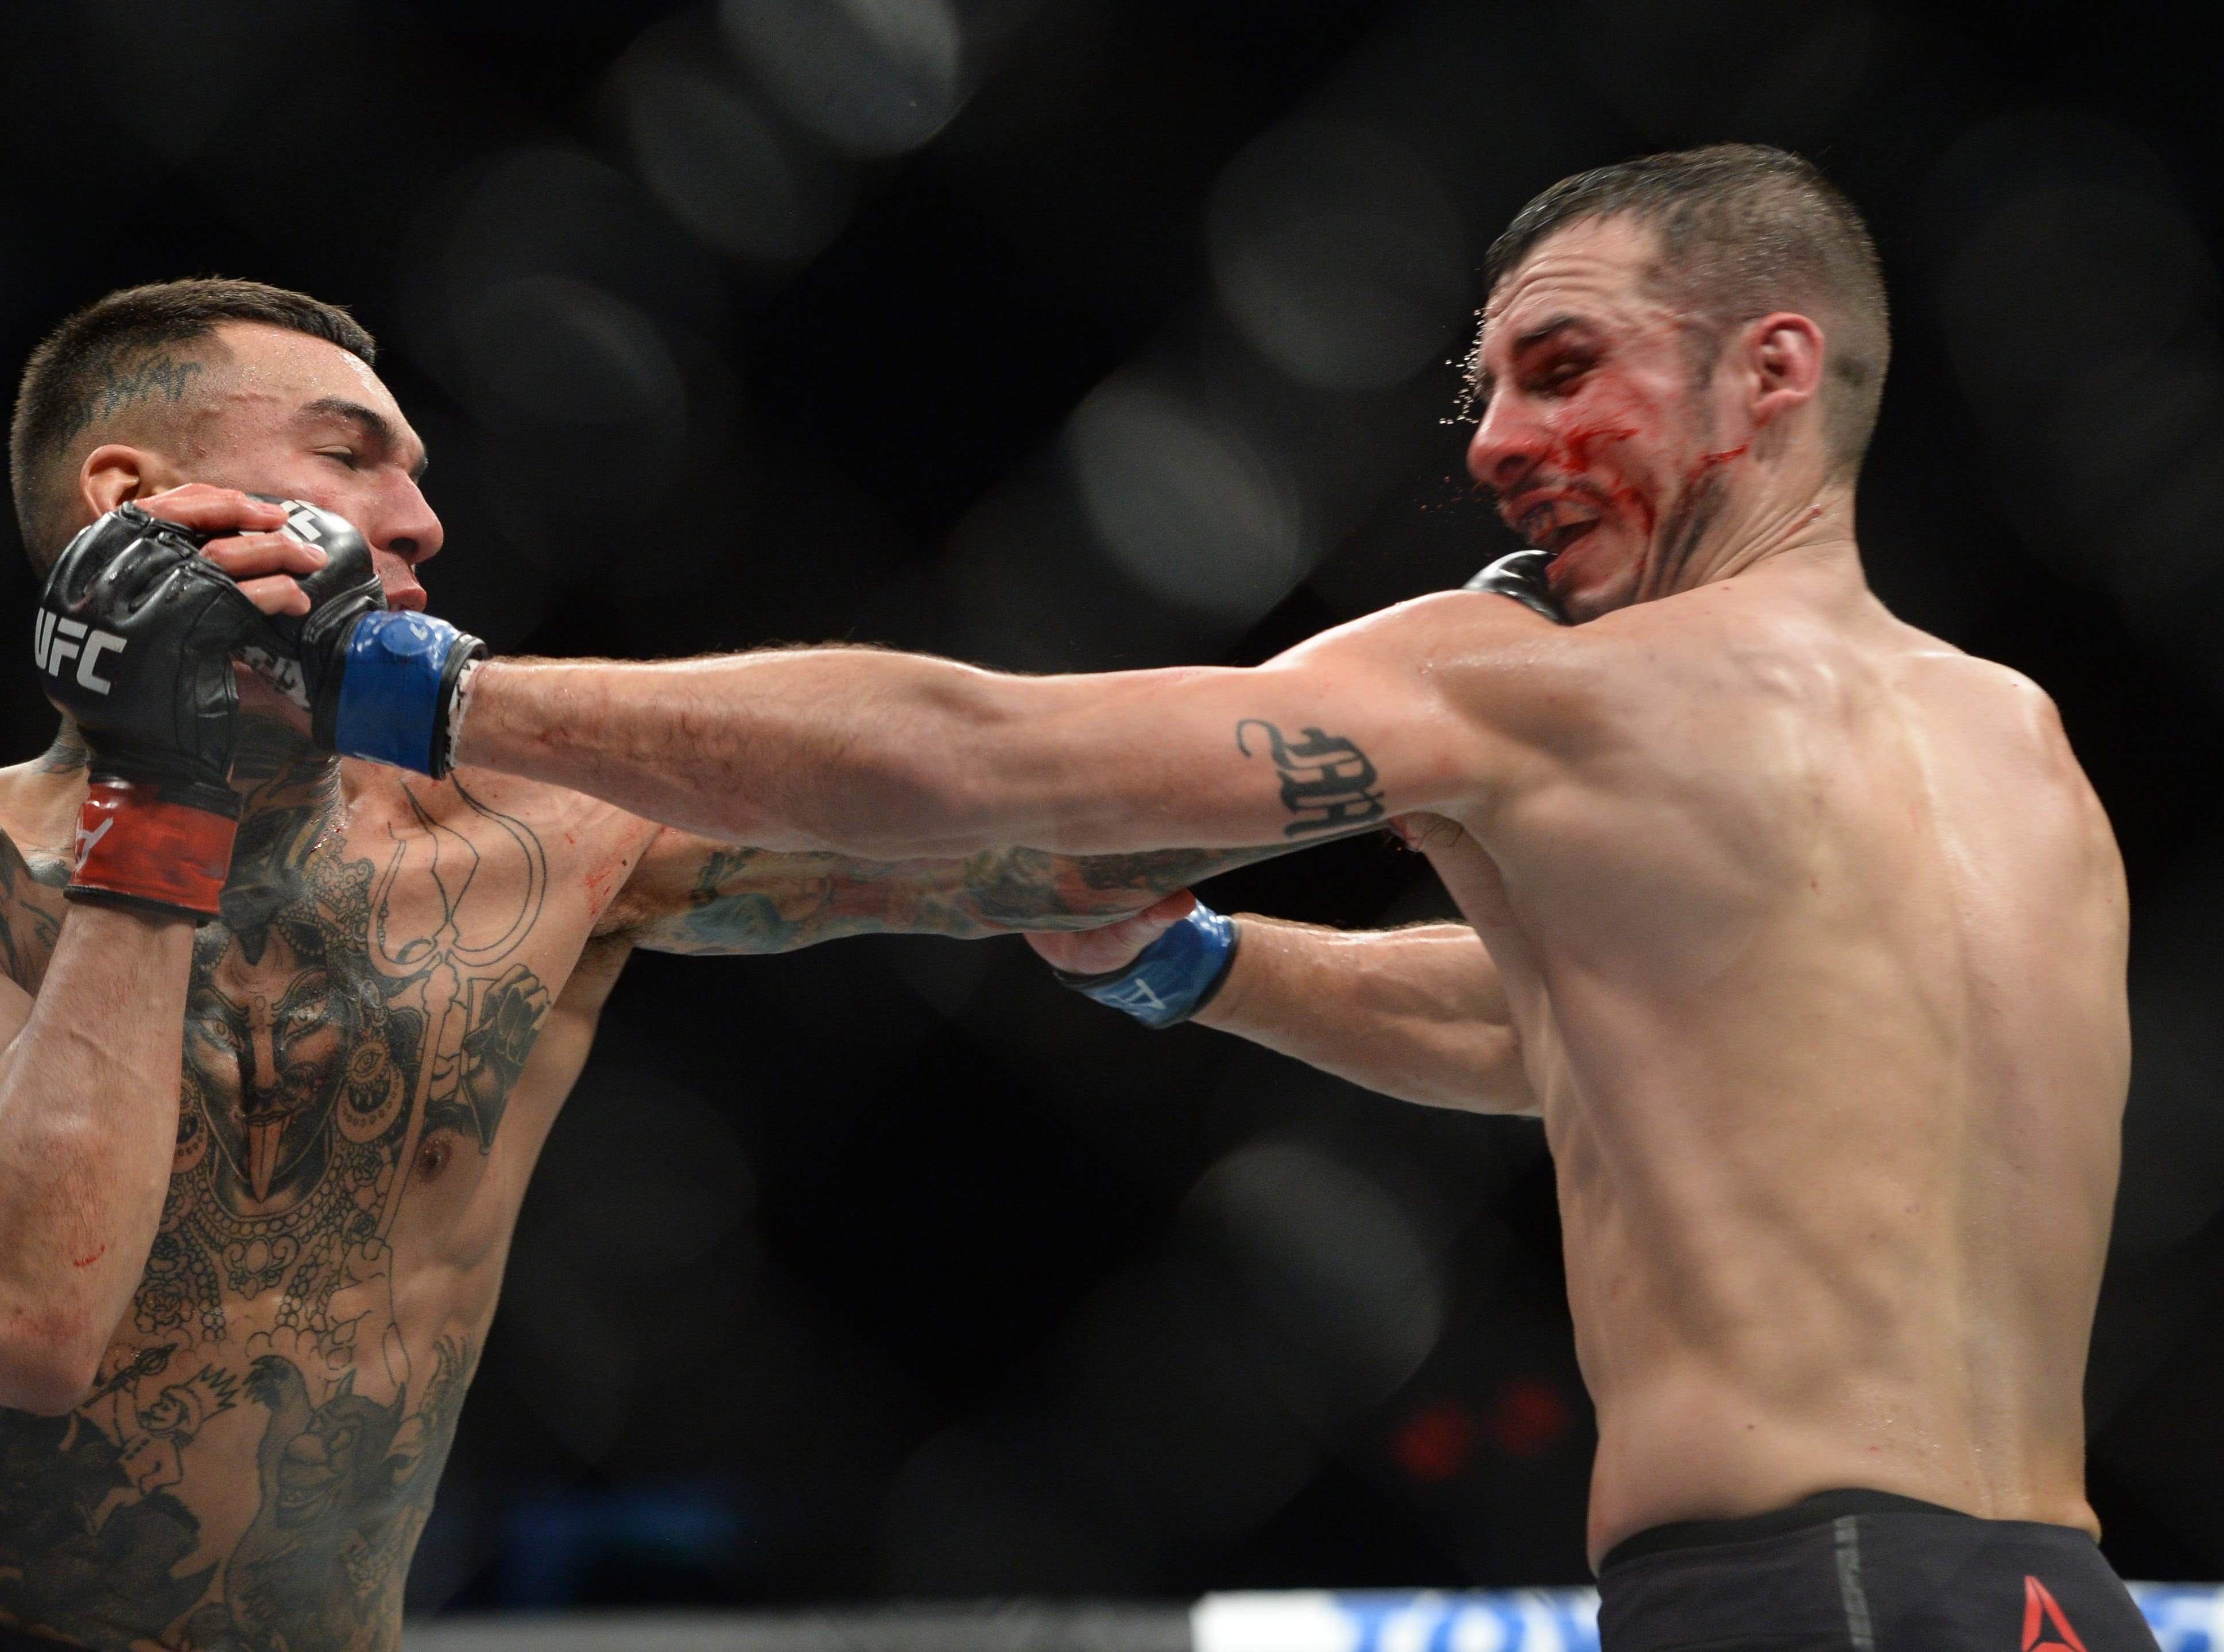 Feb 17, 2019; Phoenix, AZ, USA; Andre Fili (red) and Myles Jury (blue) fight during their featherweight bout during UFC Fight Night at Talking Stick Resort Arena. Fili won via unanimous decision. Mandatory Credit: Joe Camporeale-USA TODAY Sports